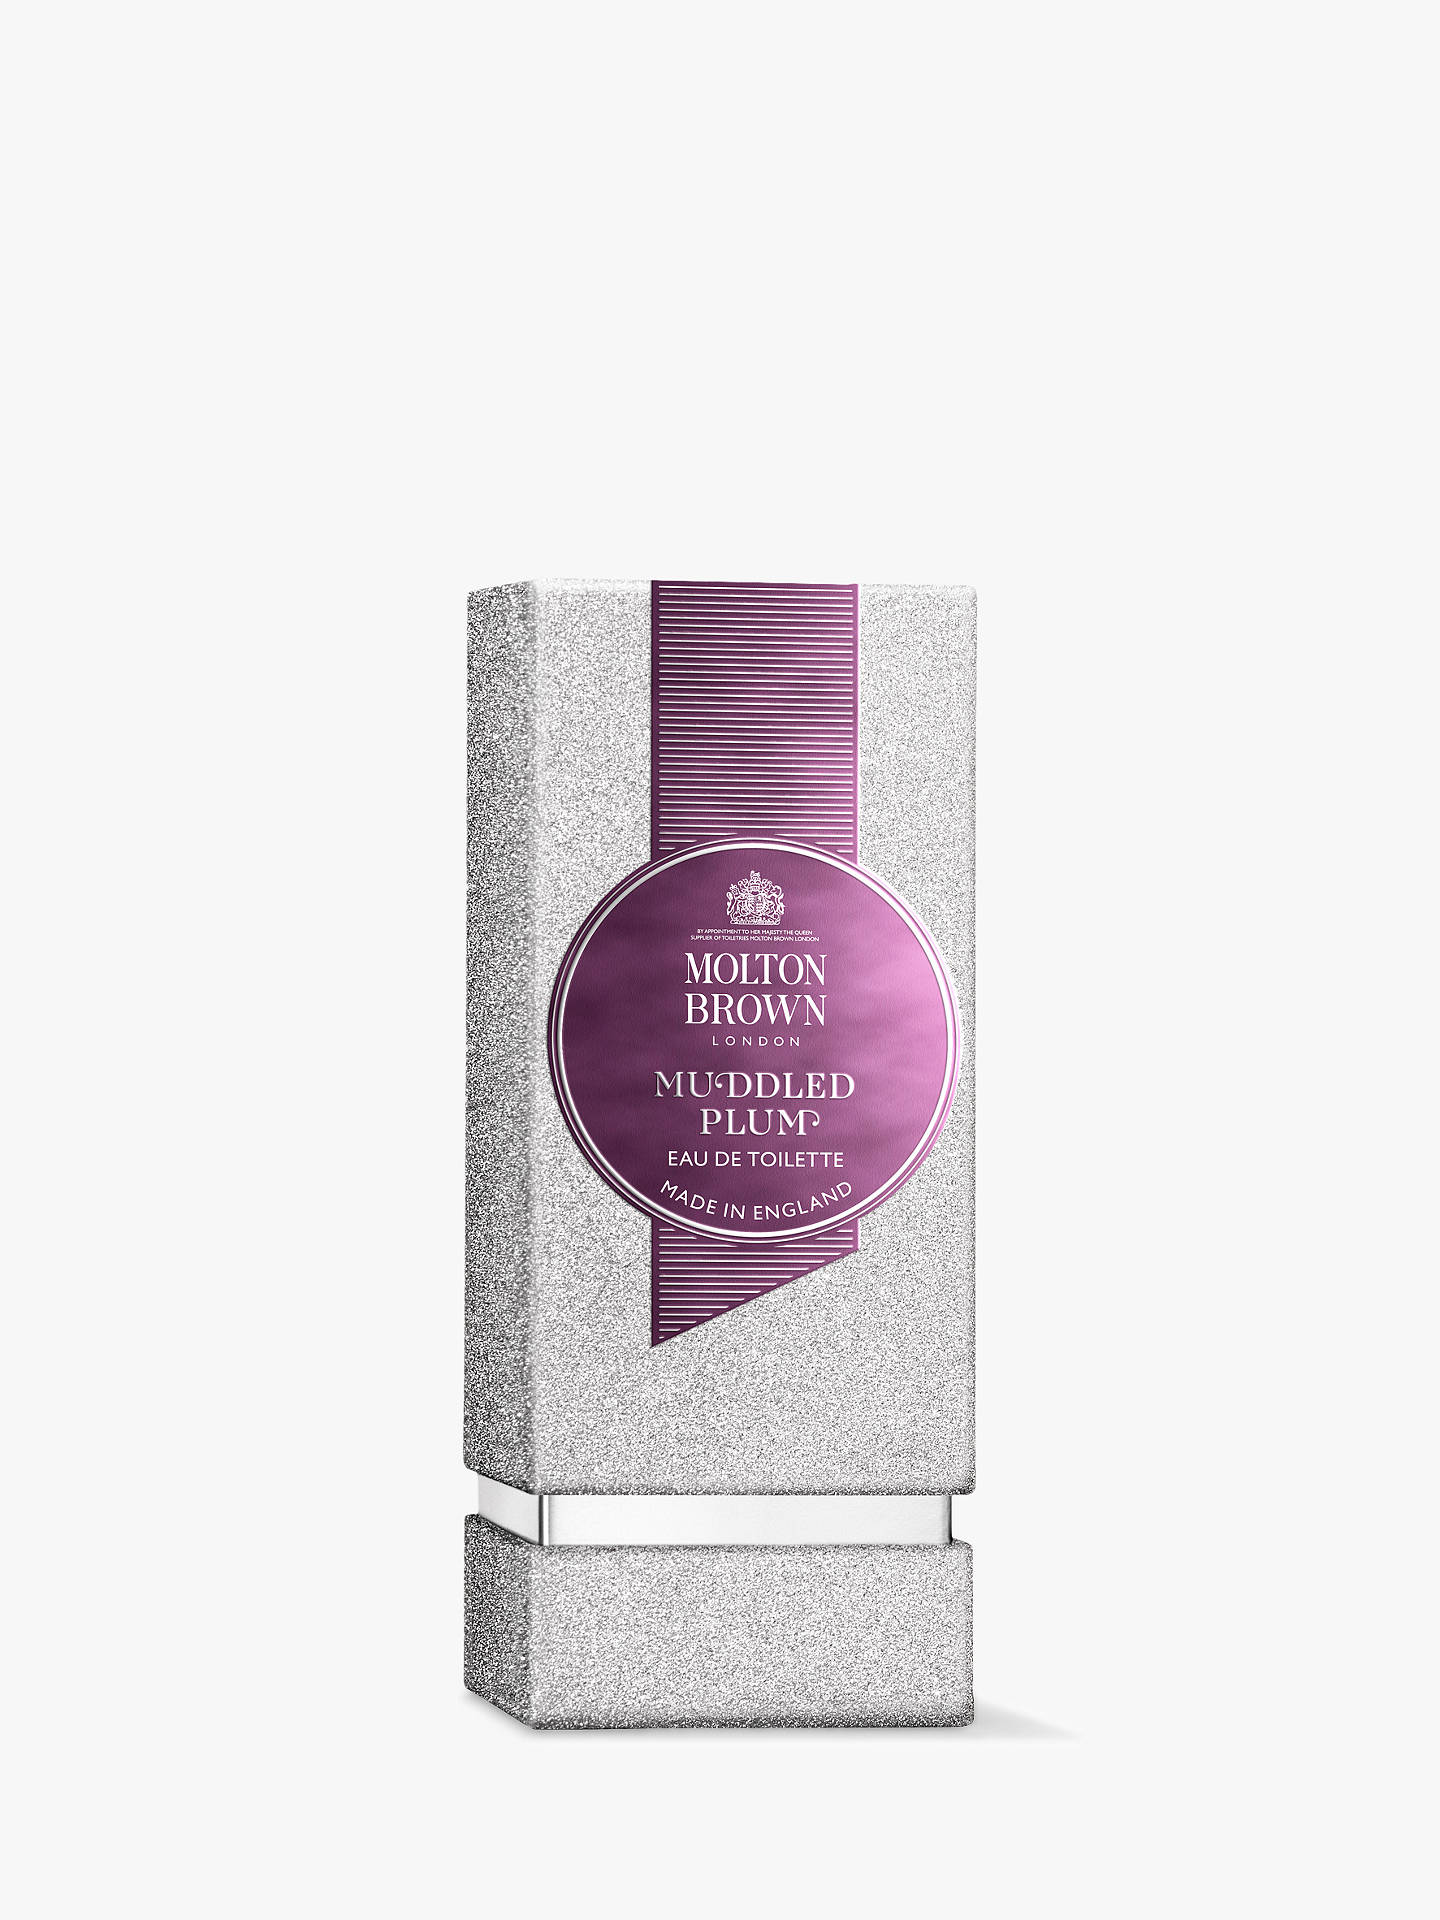 BuyMolton Brown Muddled Plum Eau de Toilette, 50ml Online at johnlewis.com